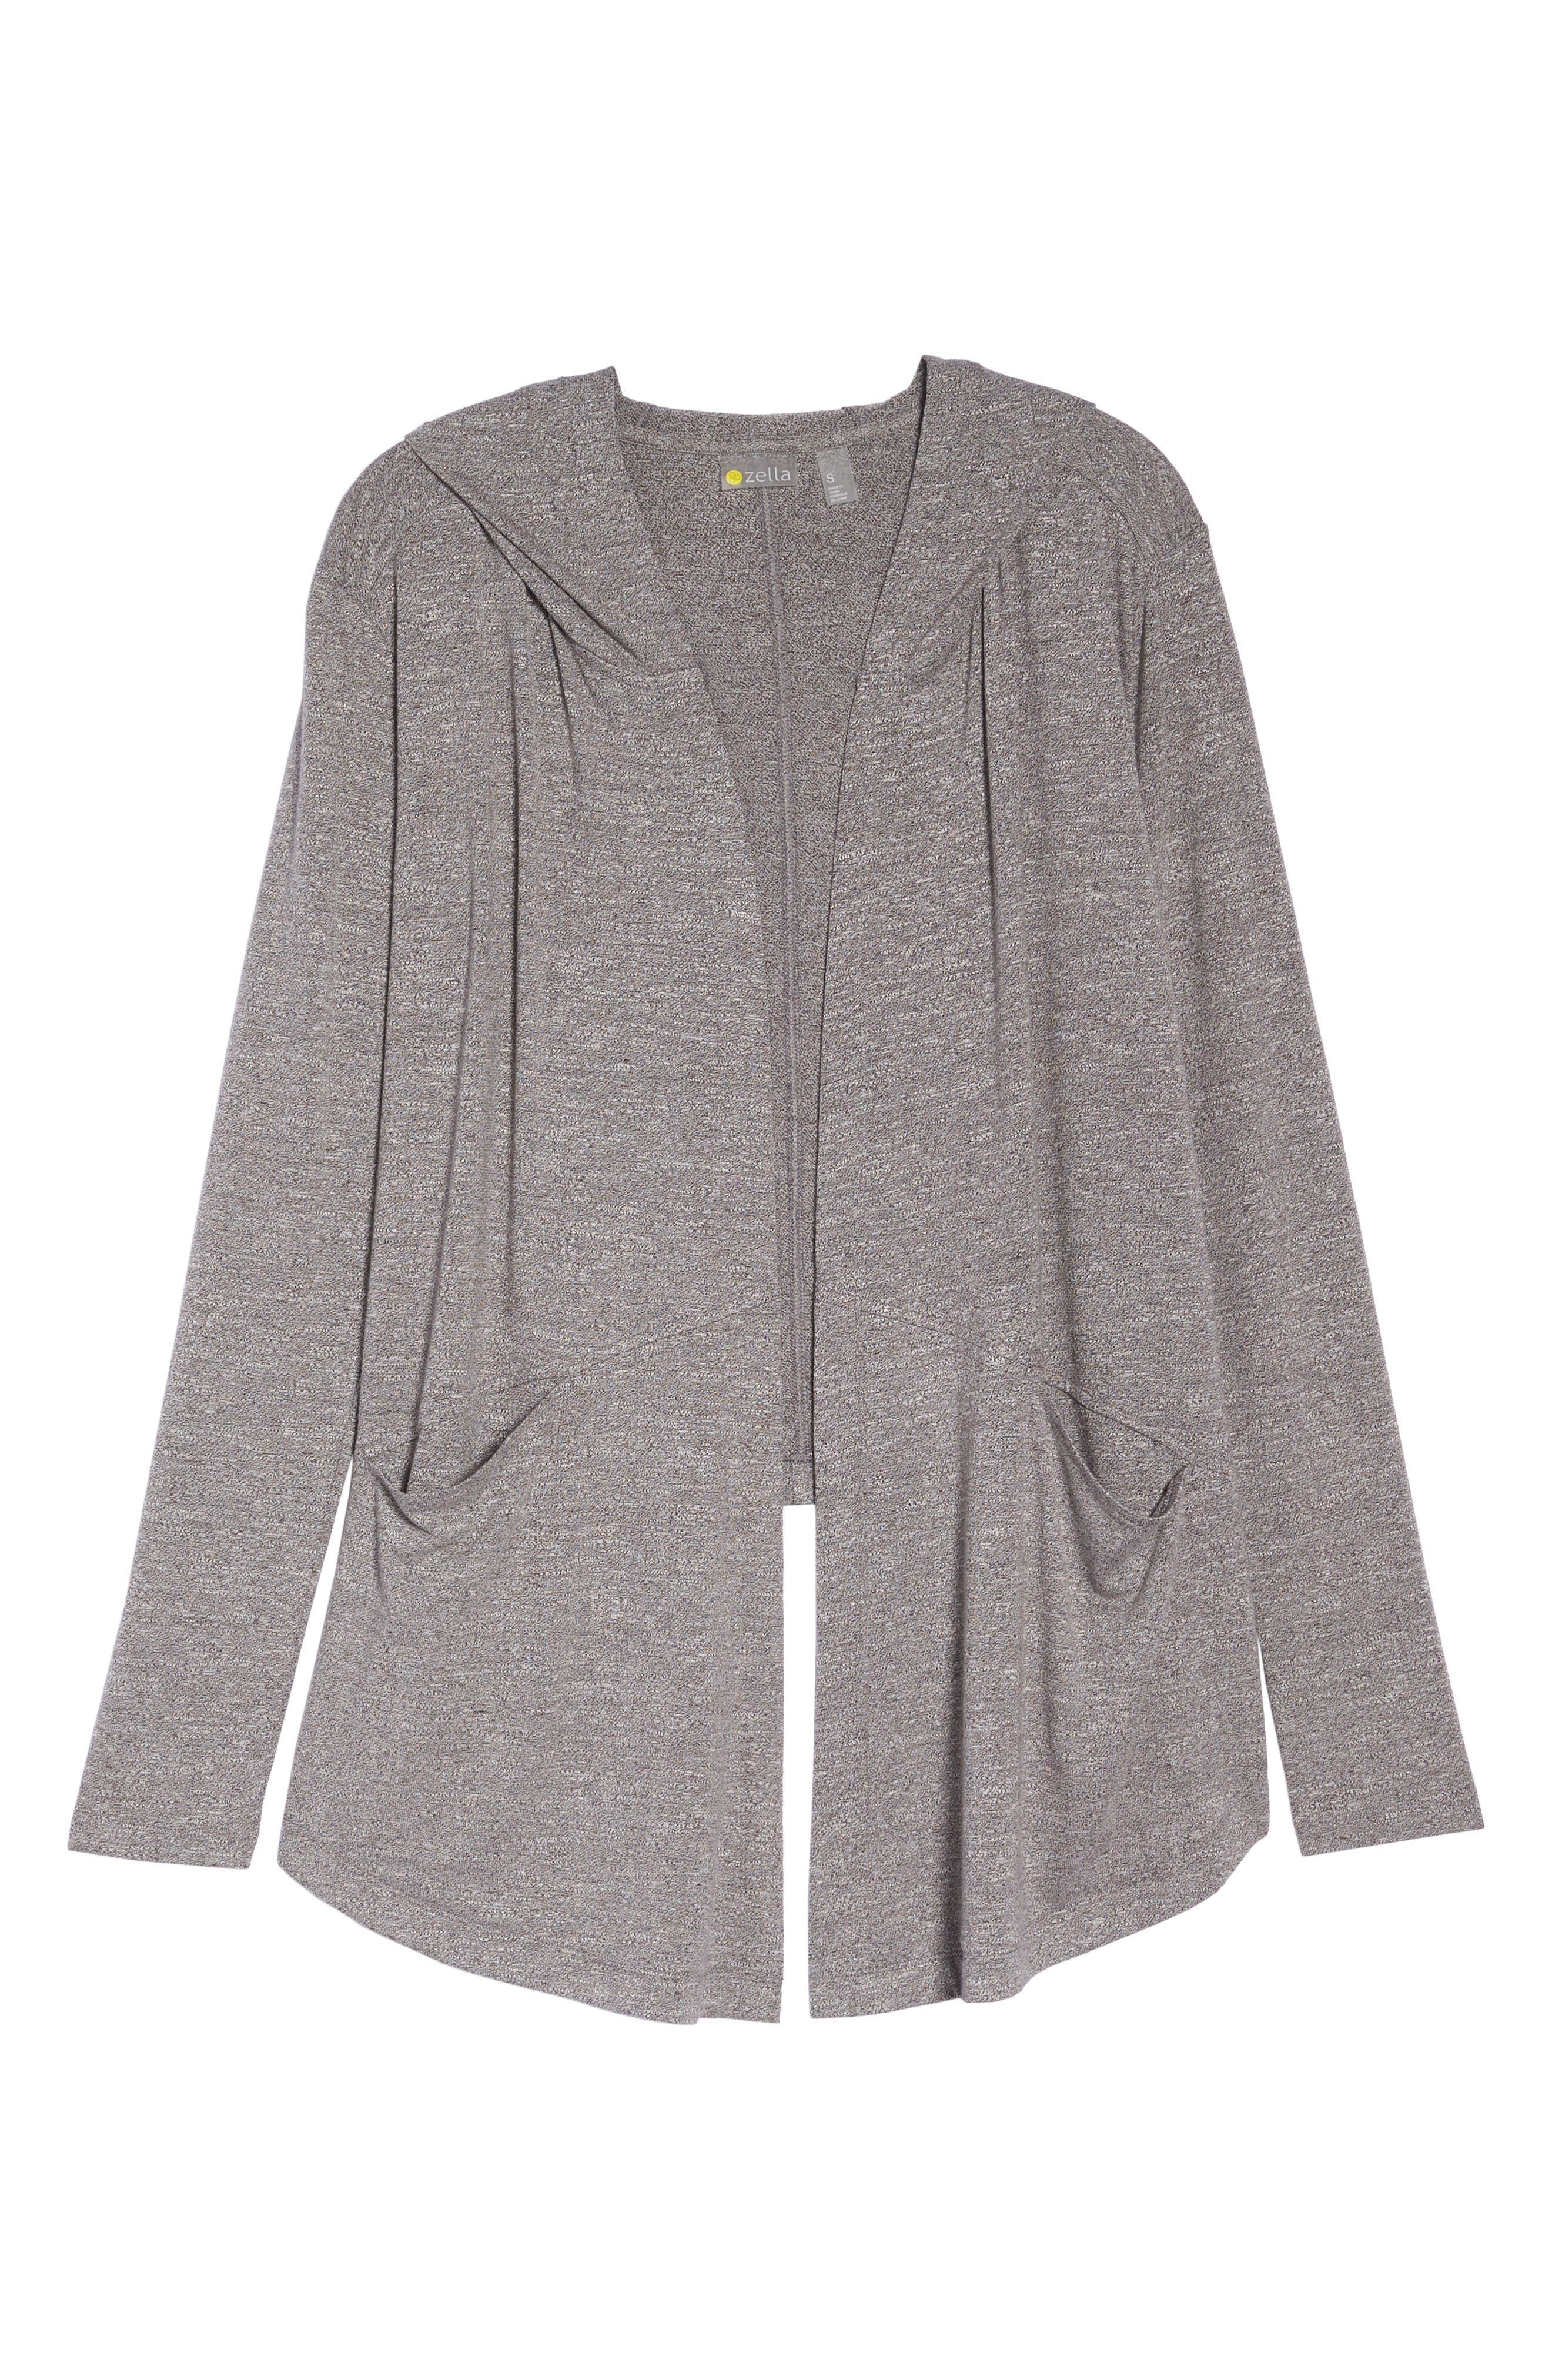 After Class Hooded Cardigan,                             Alternate thumbnail 7, color,                             GREY DARK HEATHER